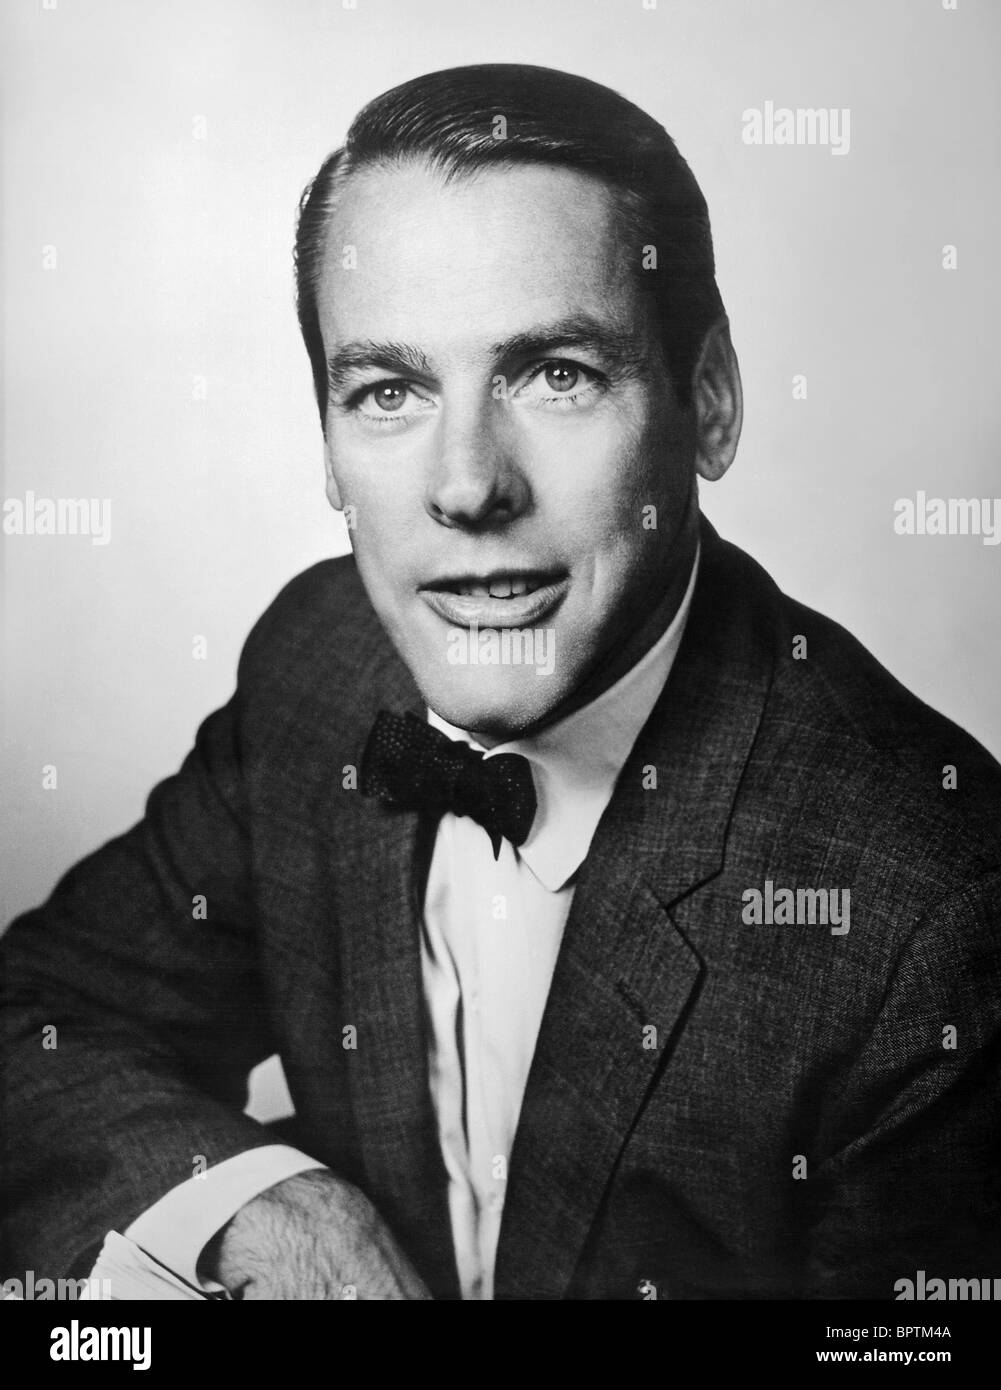 KEVIN MCCARTHY ACTOR (1951) - Stock Image